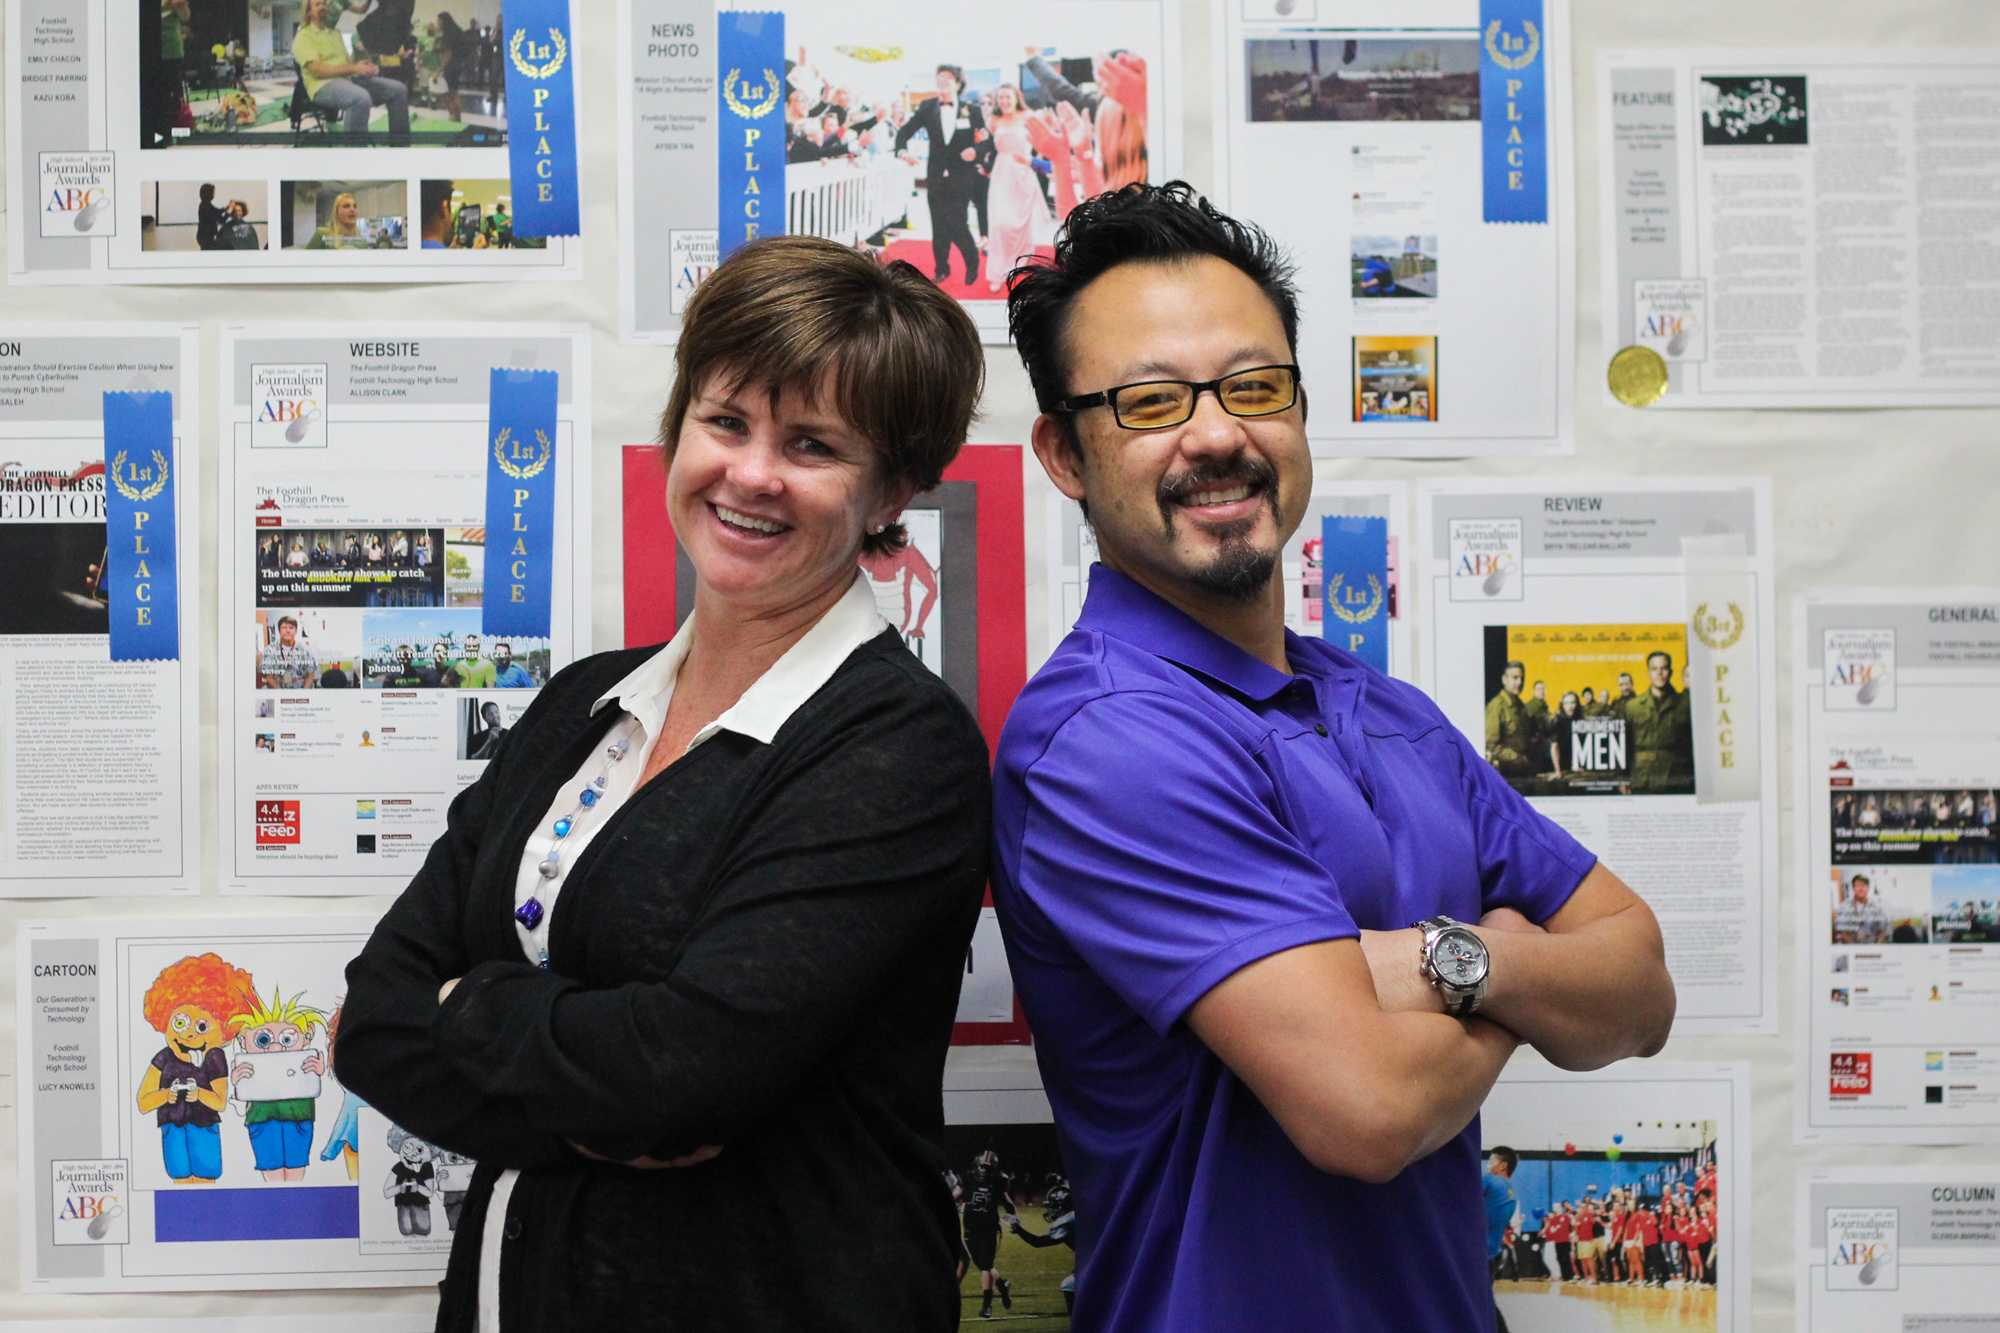 The Dragon Press adviser Melissa Wantz is leaving Foothill to become the new adviser of The Harvard-Westlake Chronicle. Yiu Hung Li will take over as the new adviser beginning next year. Credit: Chloey Settles/The Foothill Dragon Press